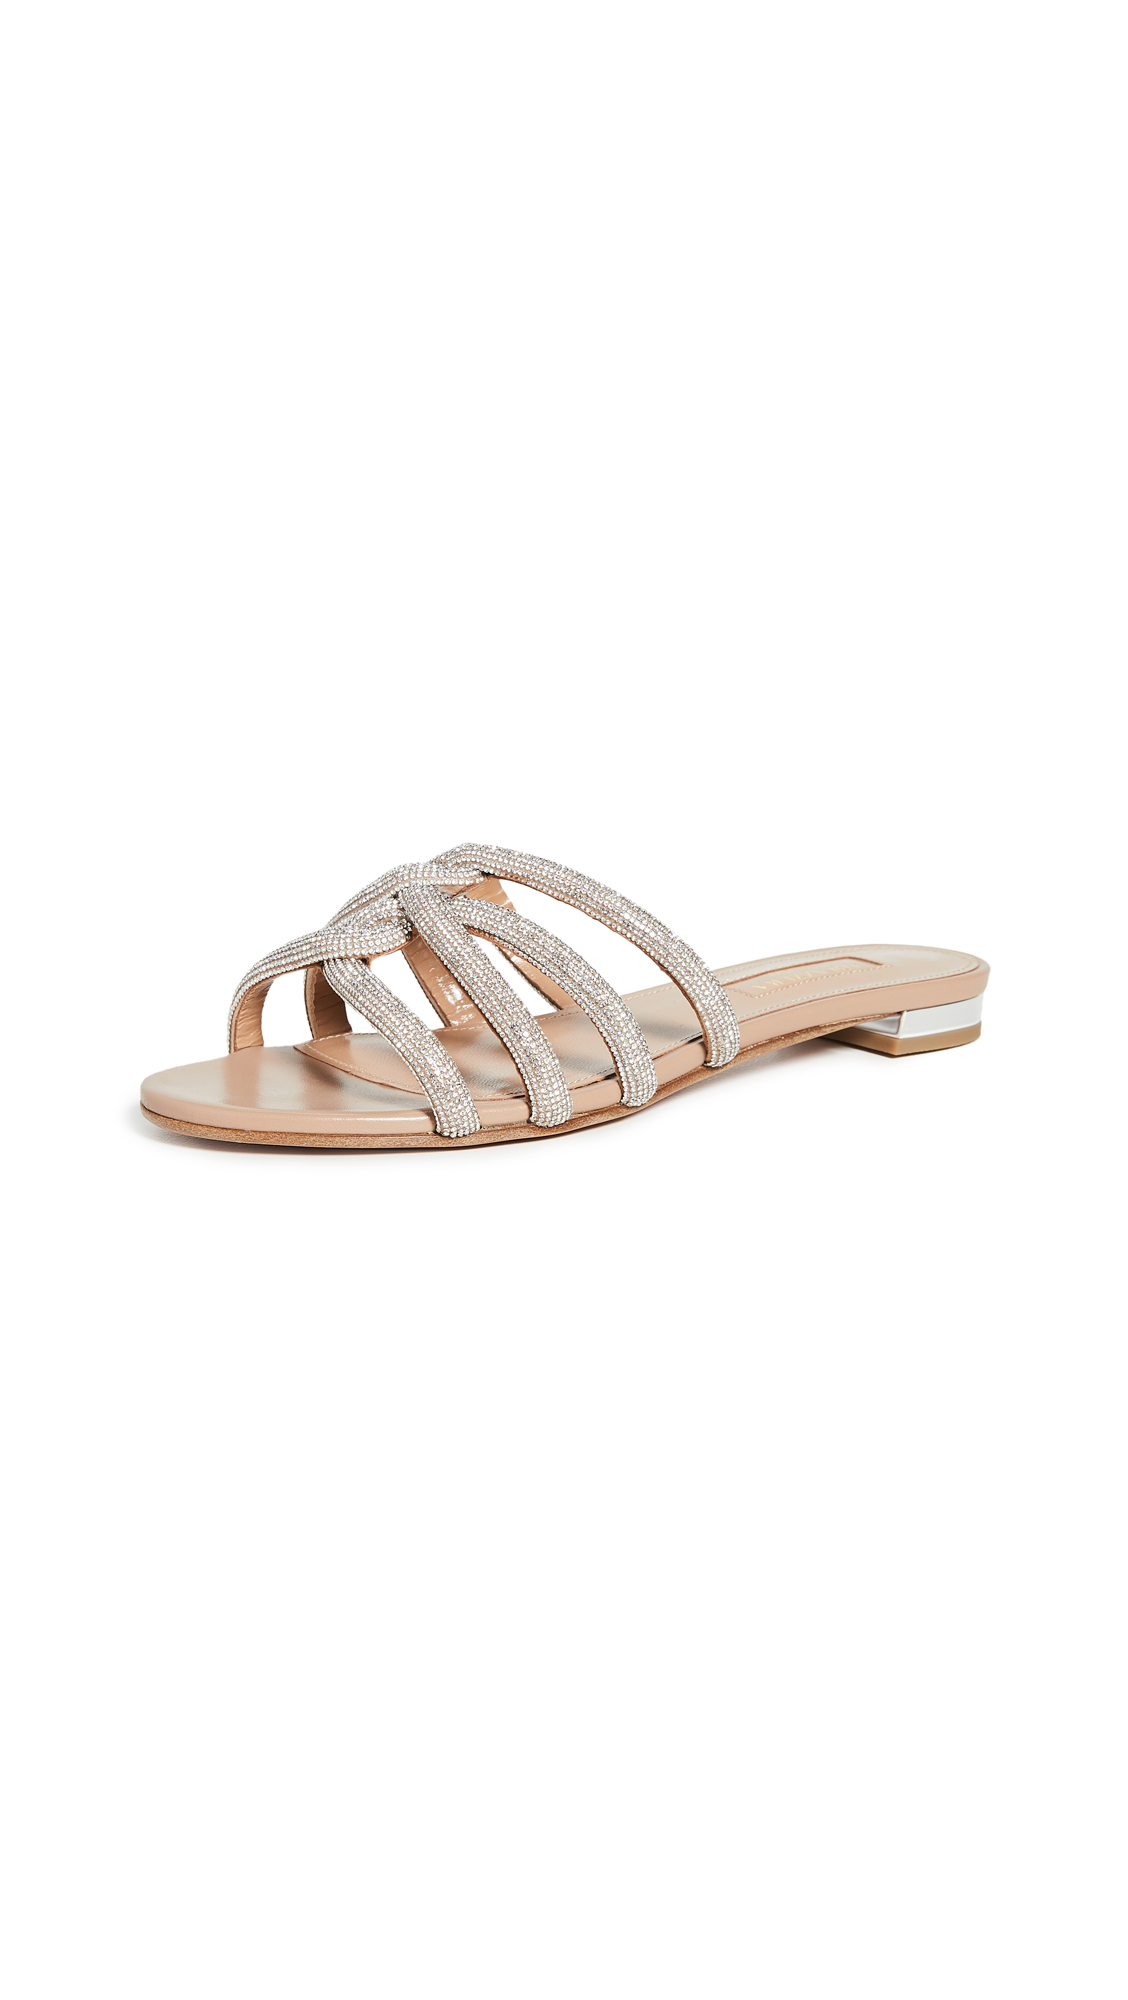 Buy Aquazzura Moondust Flats online, shop Aquazzura